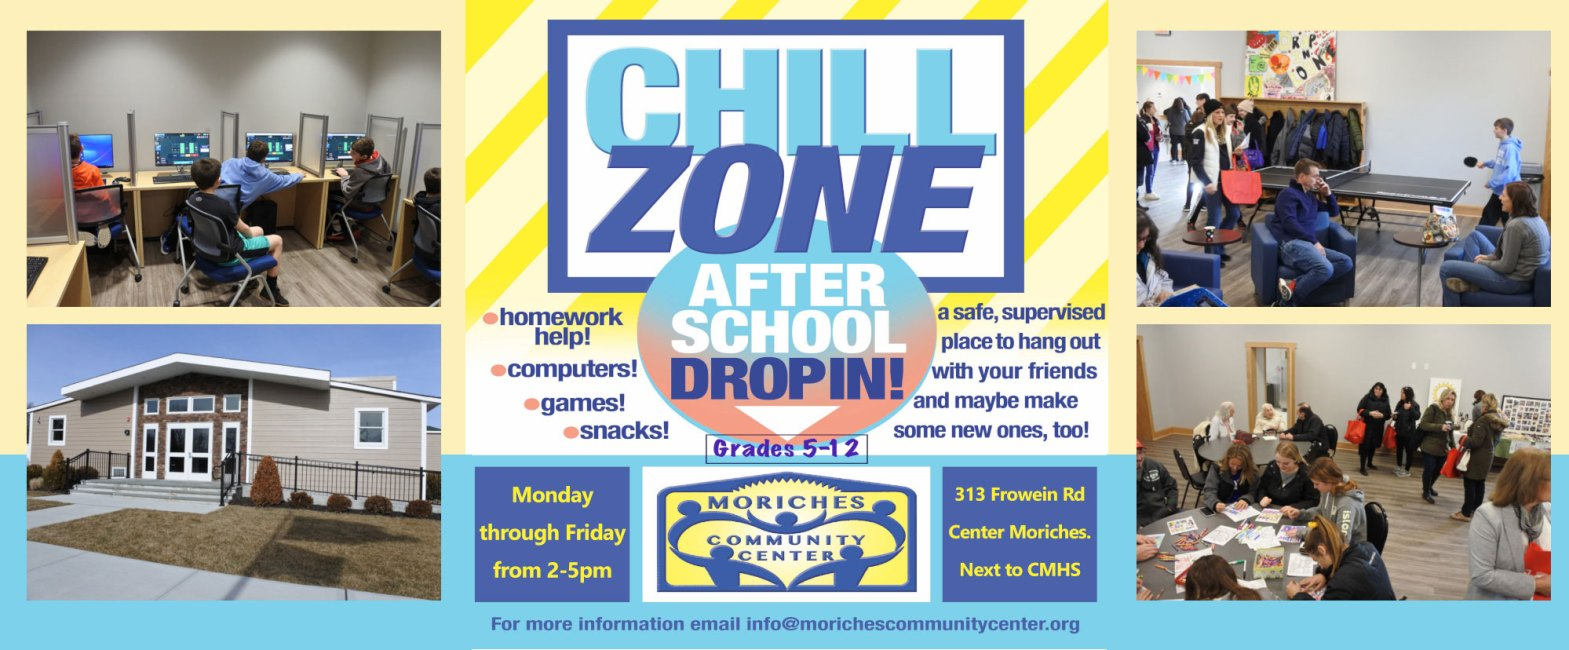 Chill Zone Flyer